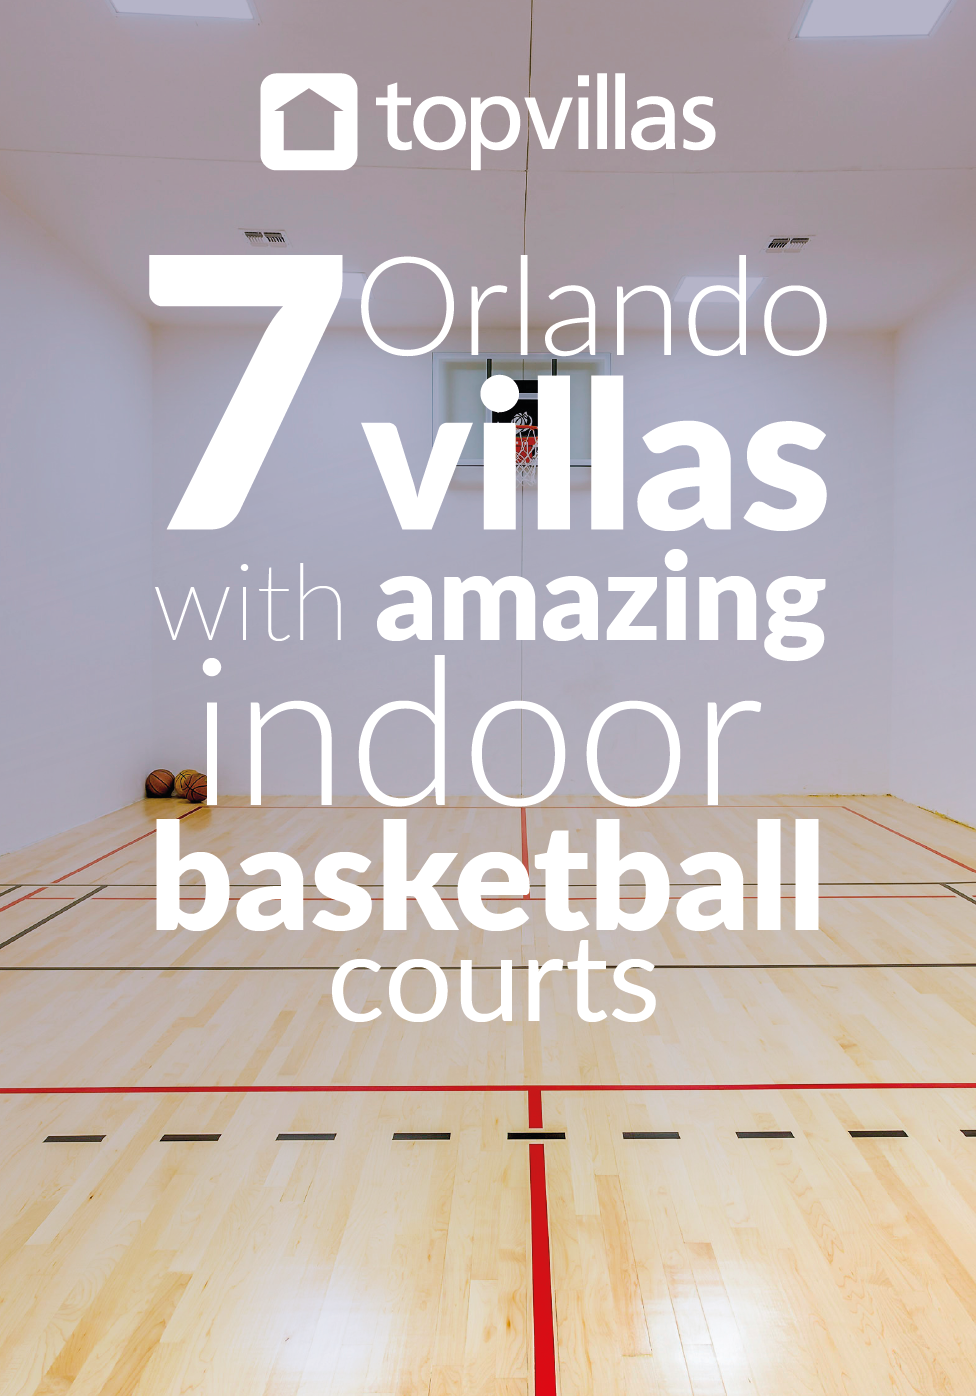 11 Orlando Villas With Amazing Indoor Basketball Courts Top Villas Indoor Basketball Court Indoor Basketball Orlando Villa